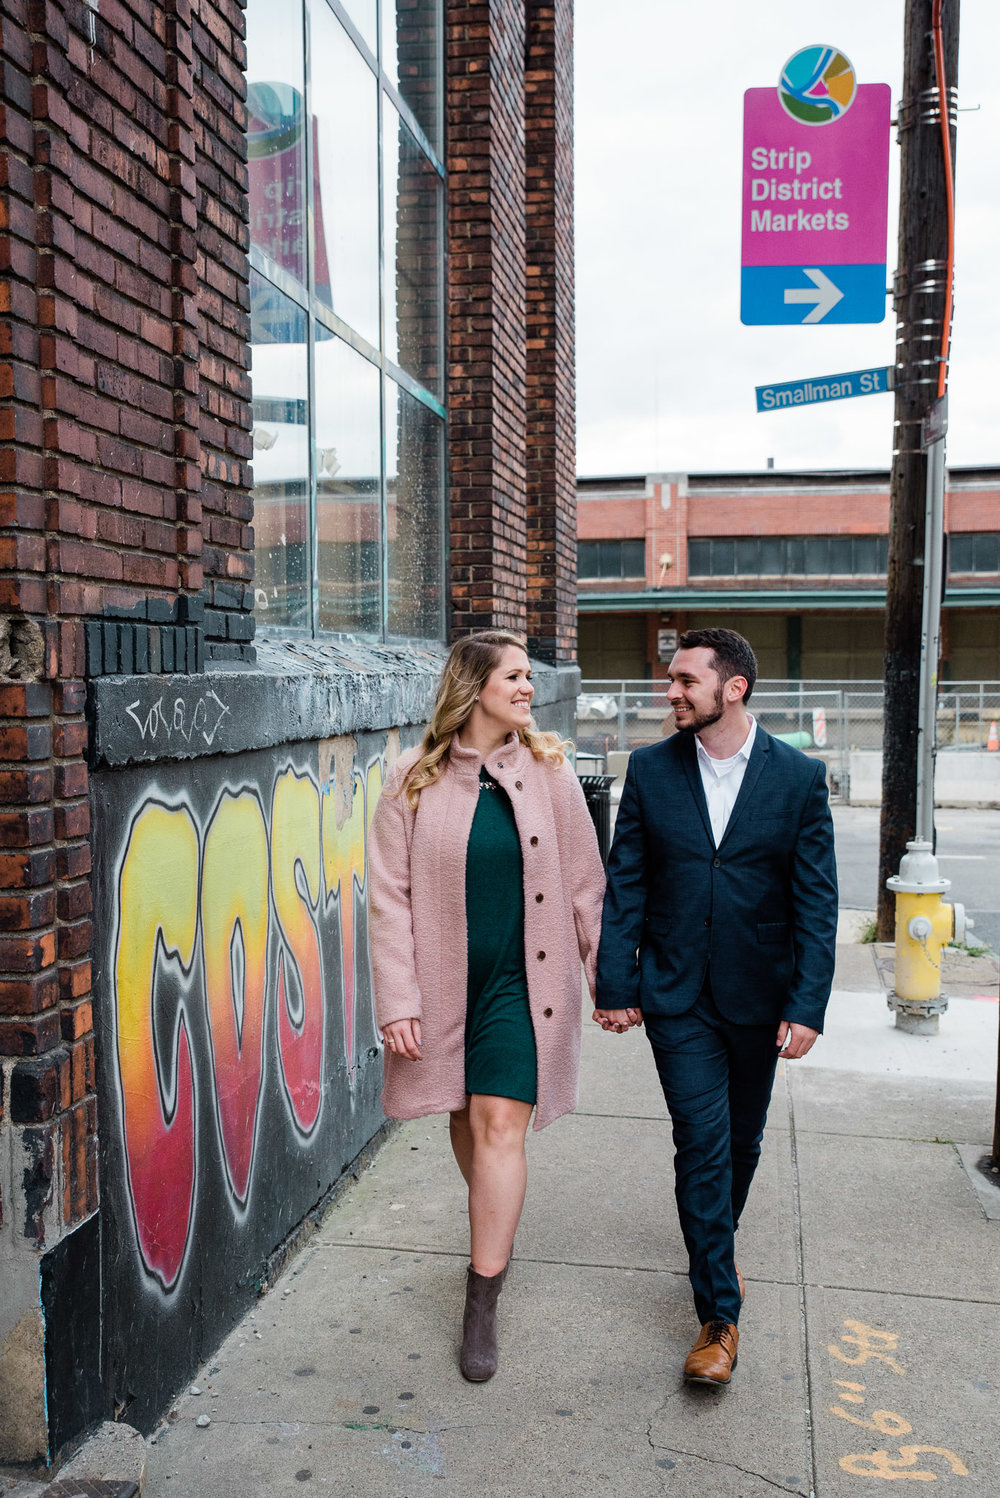 Pittsburgh+photography+engagement+session,+Strip+District-5848.jpg